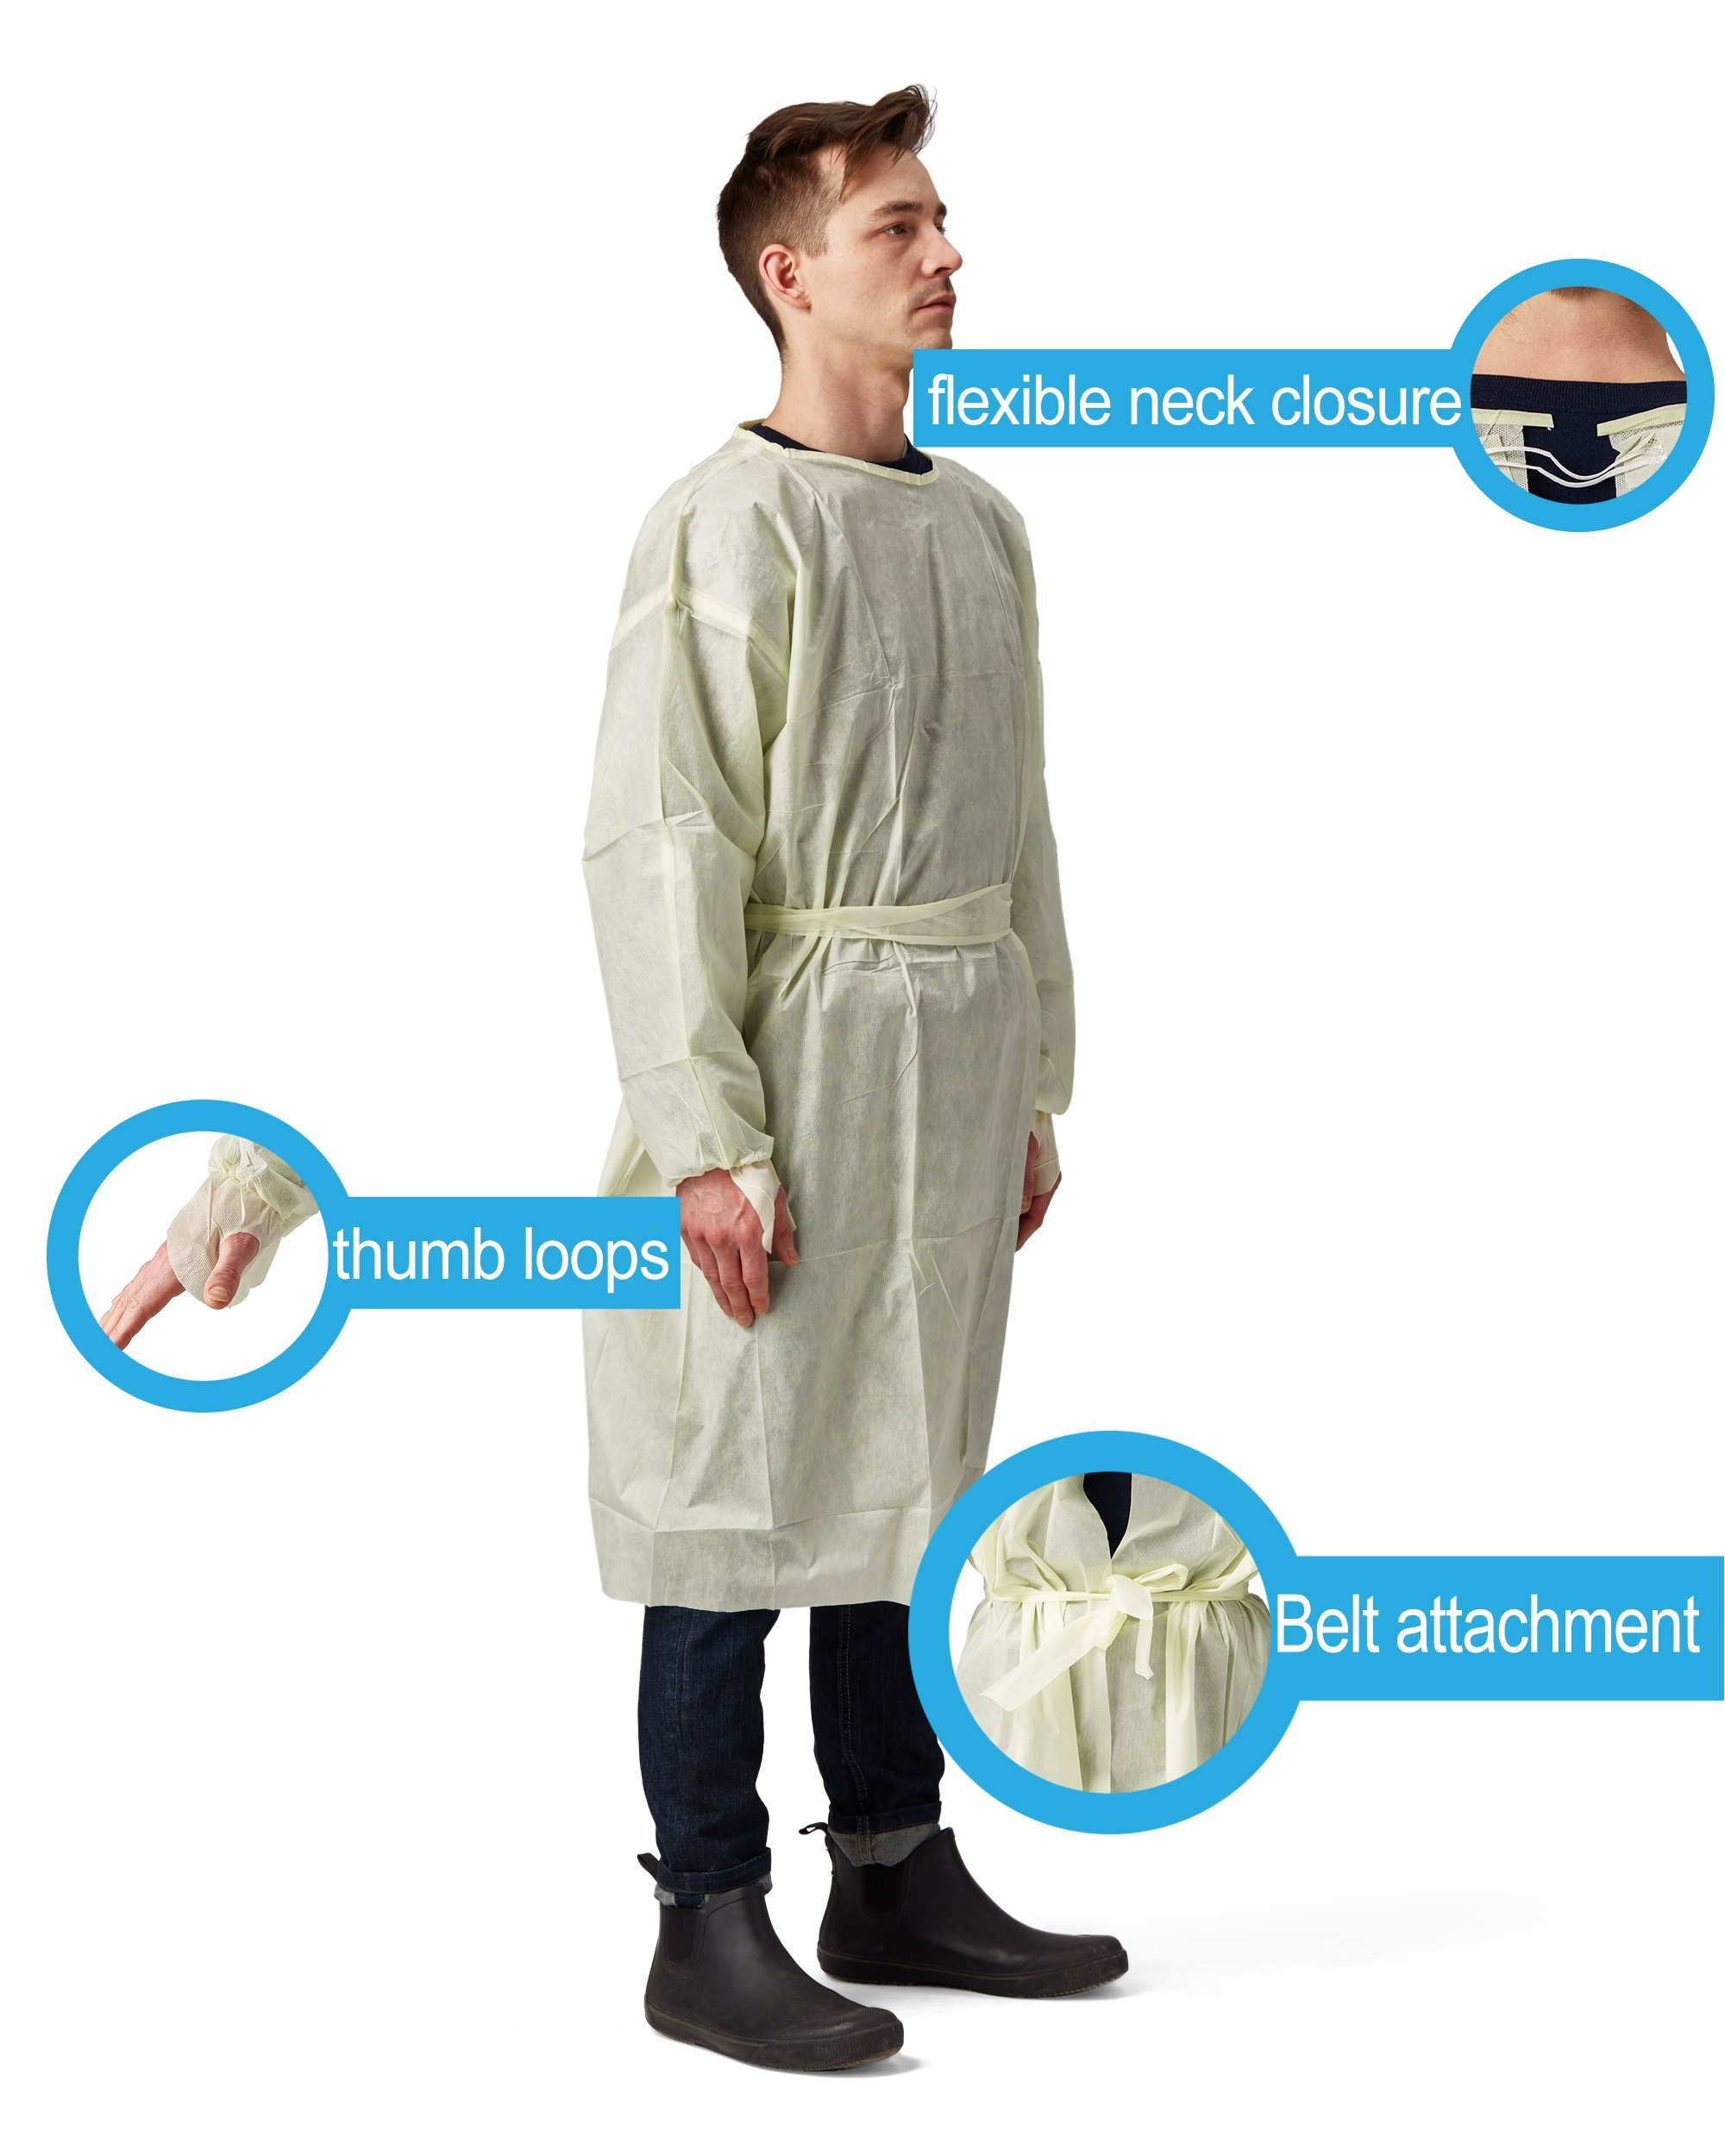 Disposable SMS Polypropylene Isolation Gown, with Elastic cuffs, Breathable, flexible, and fluid resistant. Professional Surgical gowns & Lab Coats. (10 Units, Regular) by AMD Ritmed® (Image #7)